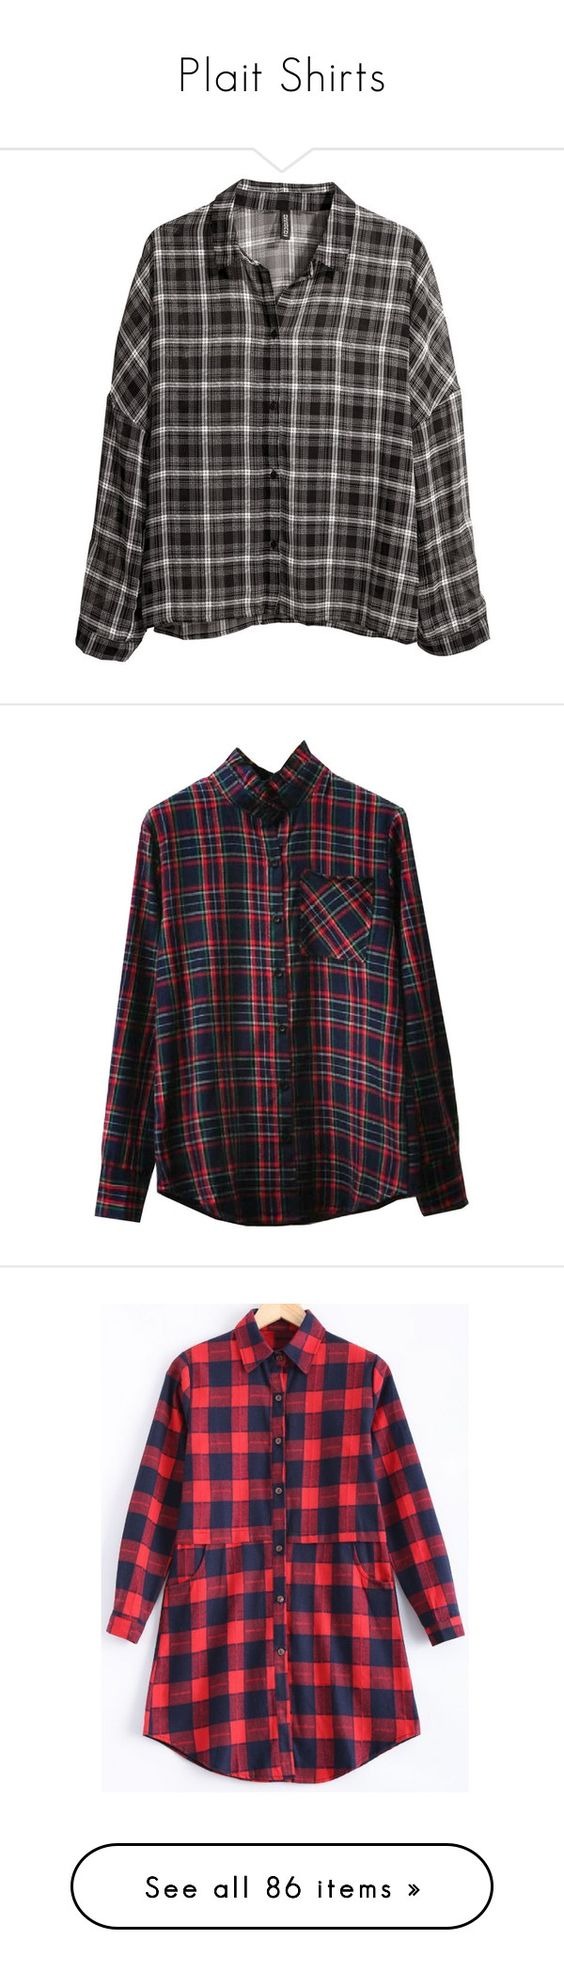 """Plait Shirts"" by janjanzira-1 ❤ liked on Polyvore featuring tops, blouses, shirts, flannels, black, flannel shirts, extra long sleeve shirts, pattern shirt, pattern blouses and long-sleeve shirt"